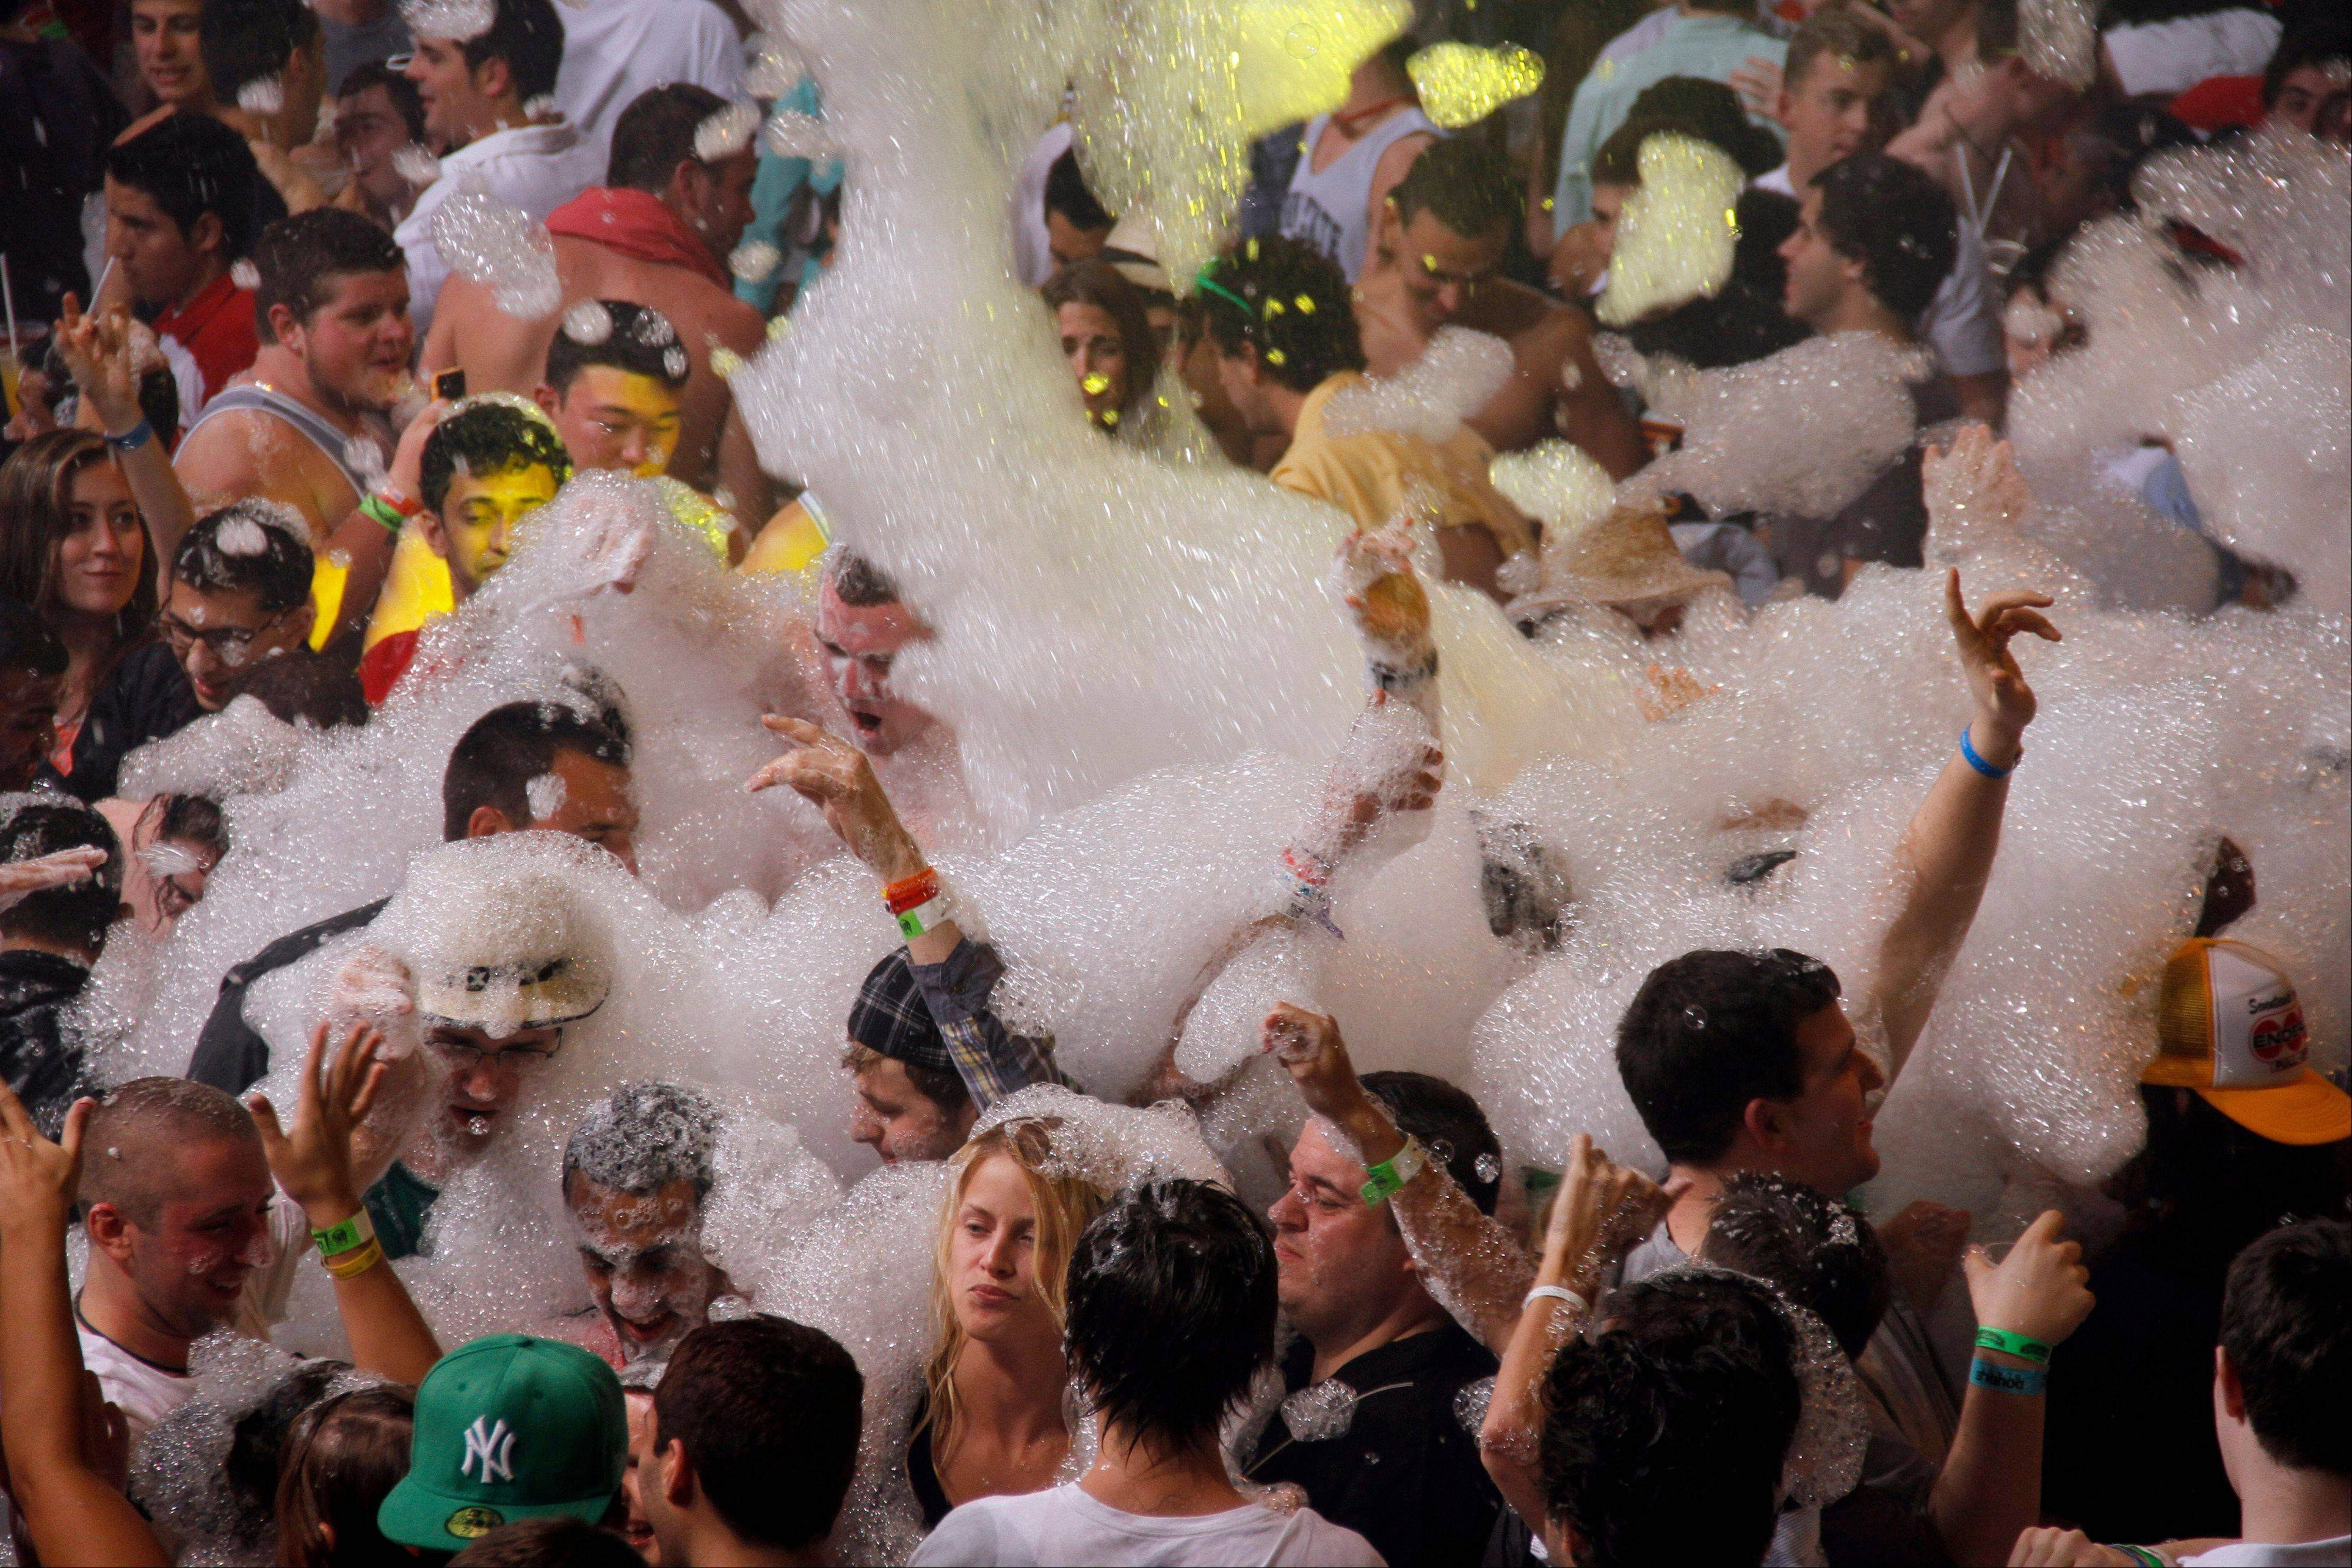 Spring break revelers enjoy a foam party at a nightclub in the resort city of Cancun, Mexico. Cancun is the No. 1 foreign destination for U.S. college students.